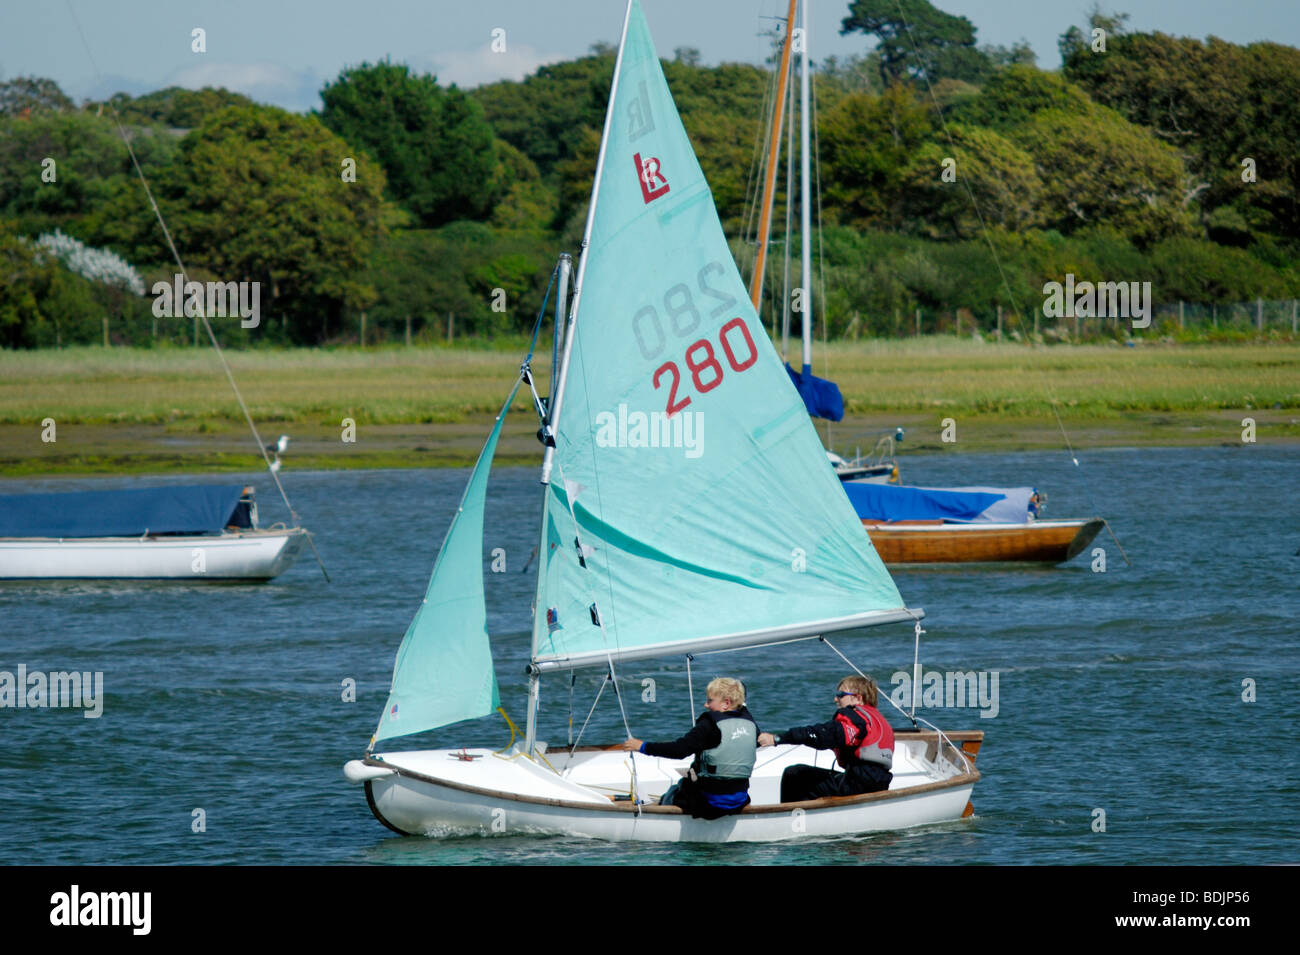 Two children sailing in a dingy - Stock Image